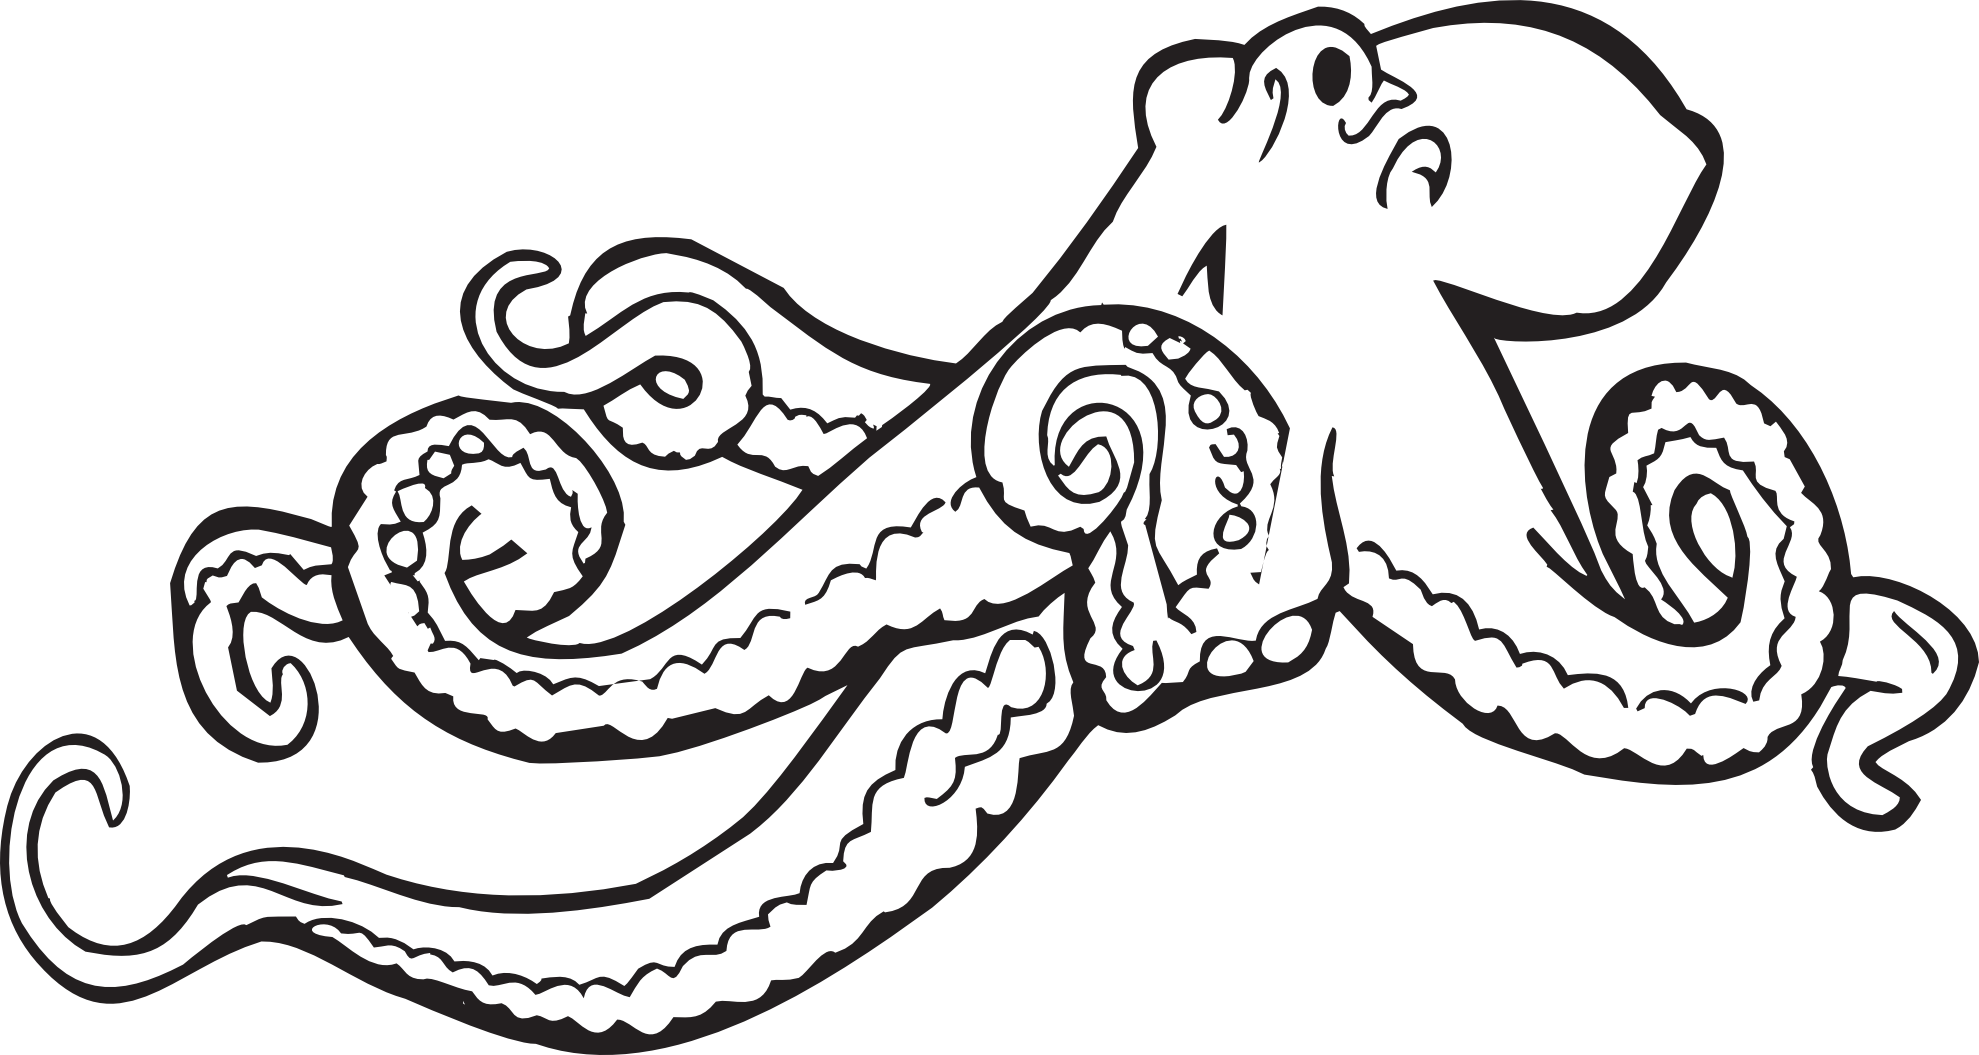 Clipart turtle vector. Octopus black and white